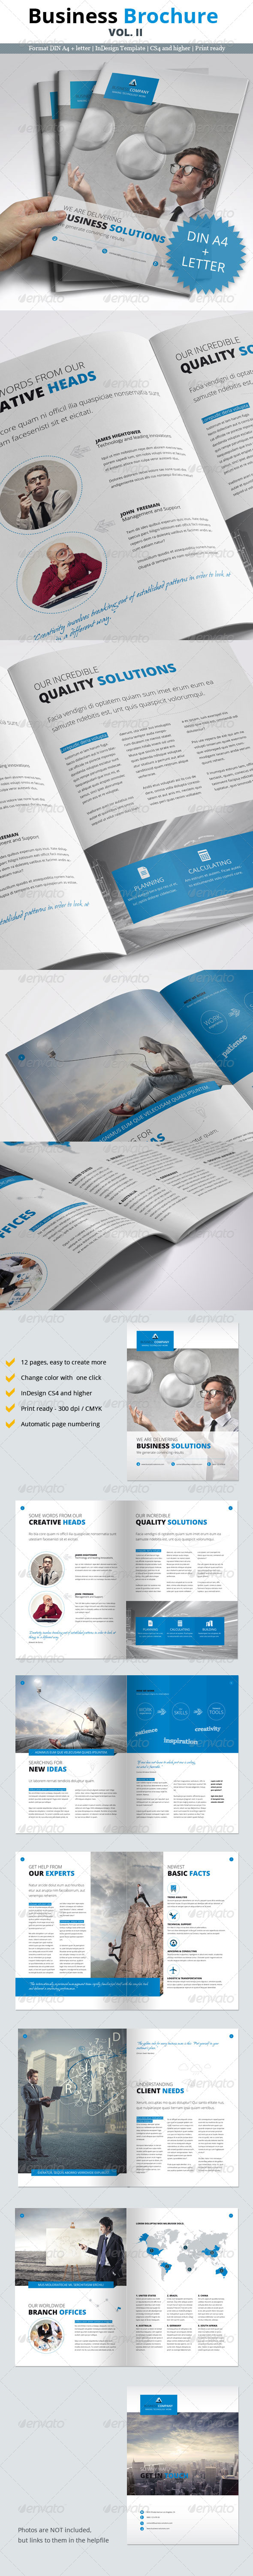 GraphicRiver 12 Page Business Brochure Vol II 6055721